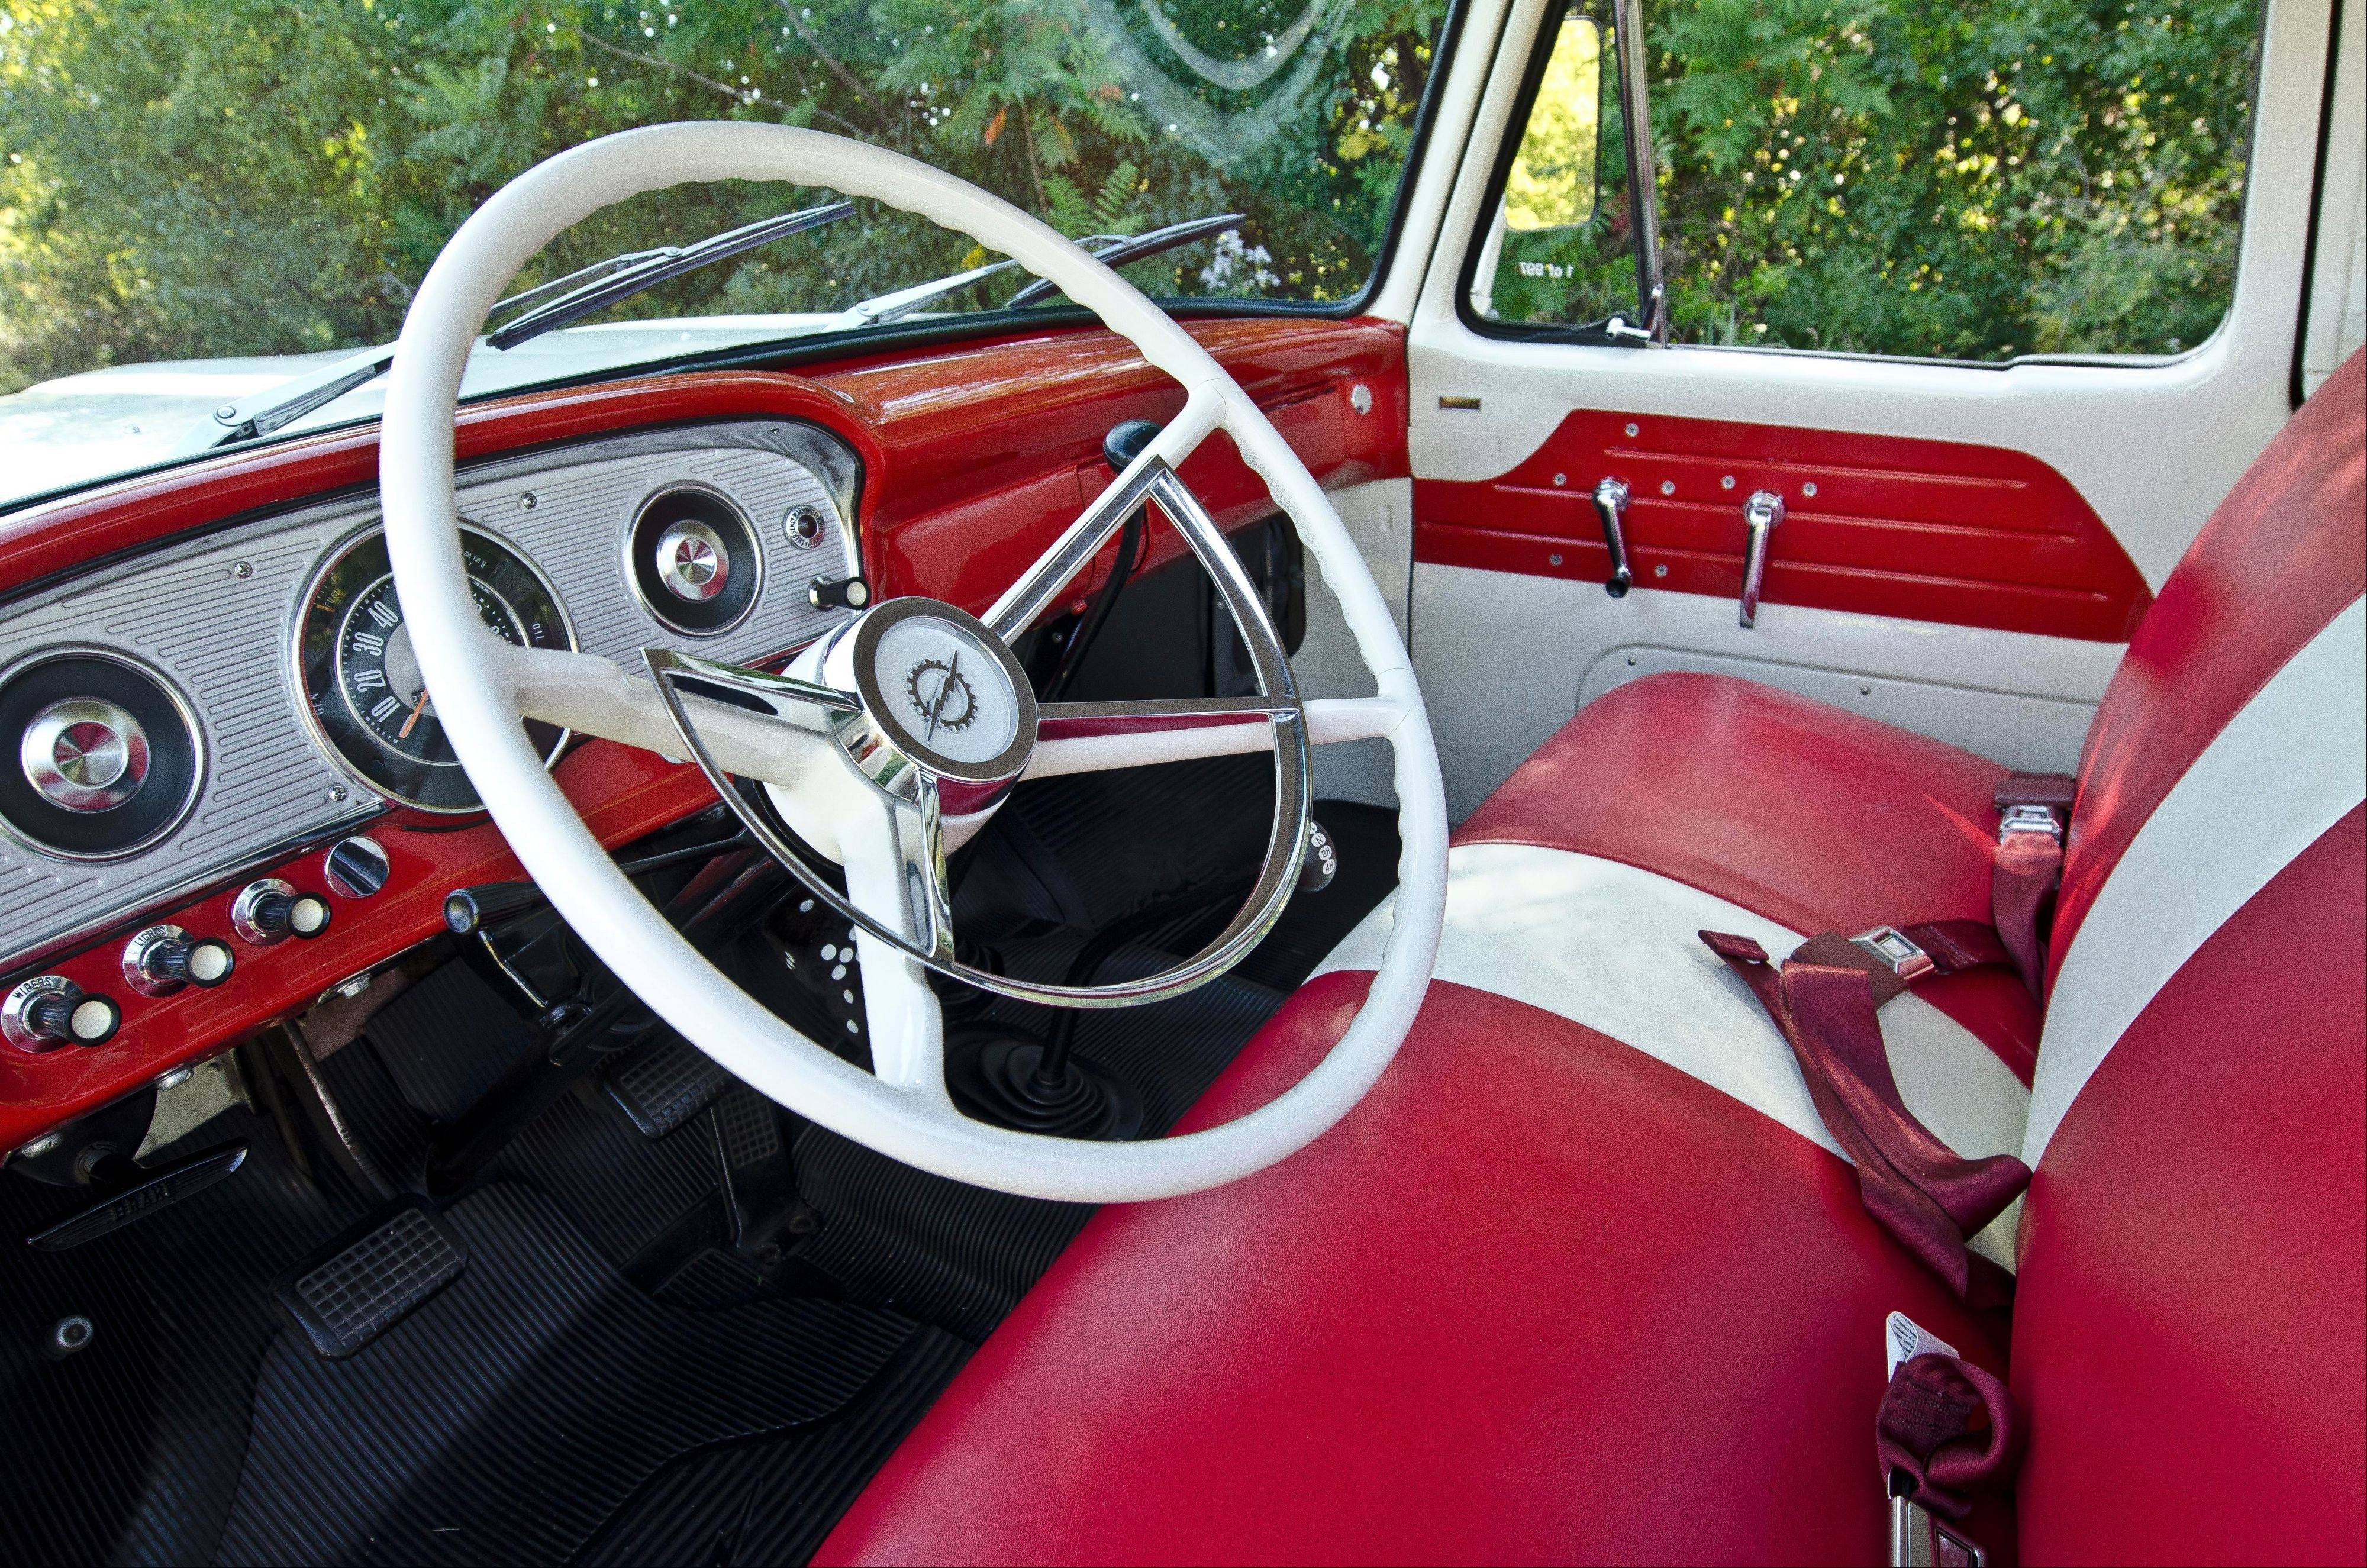 The truck's Custom Cab package included such upgrades as thicker seating and a two-toned red and white interior.